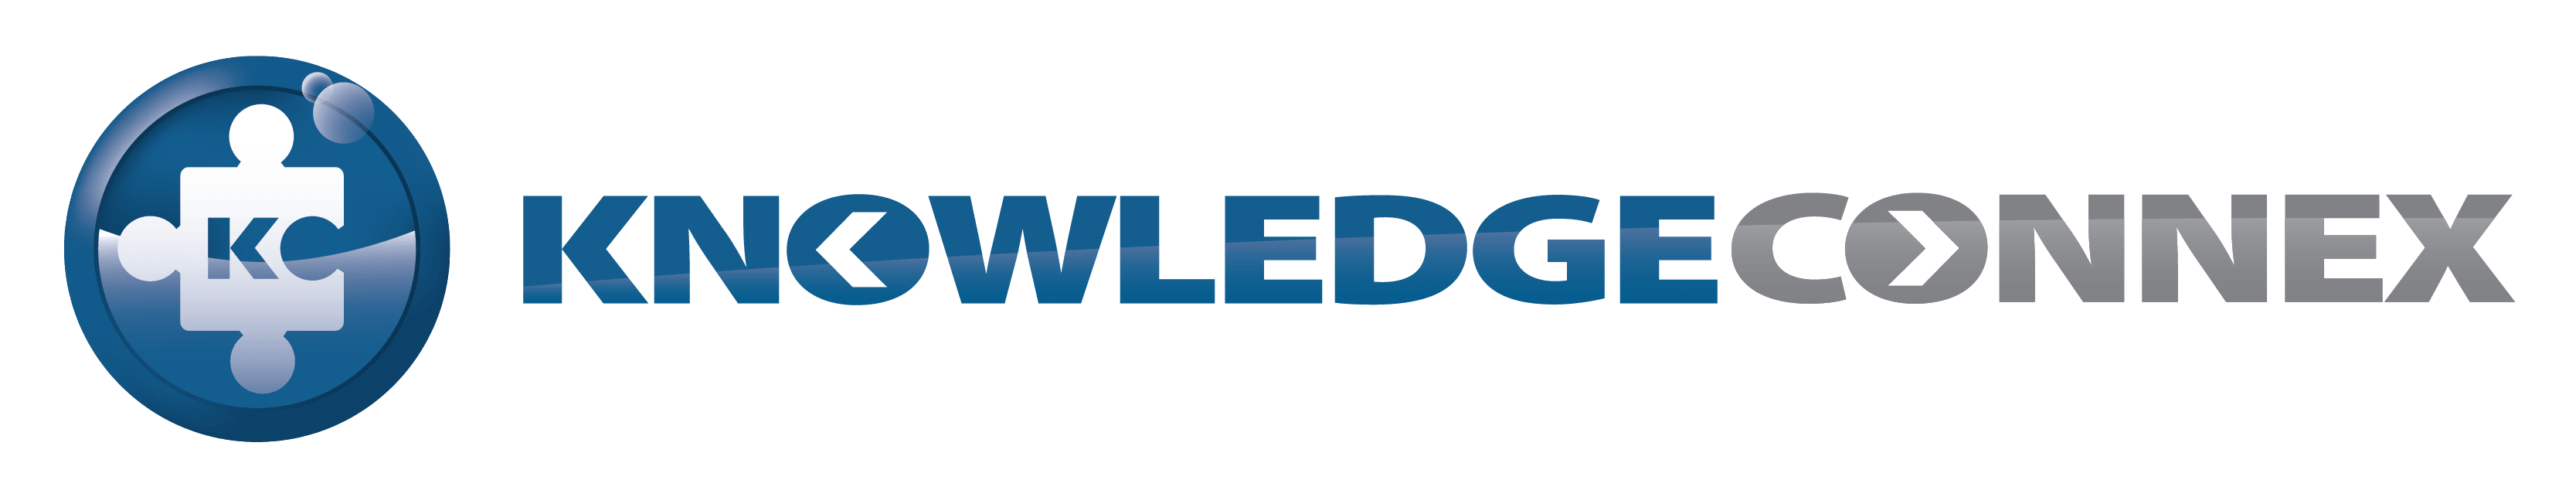 KnowledgeConnex Learning Management System (LMS)